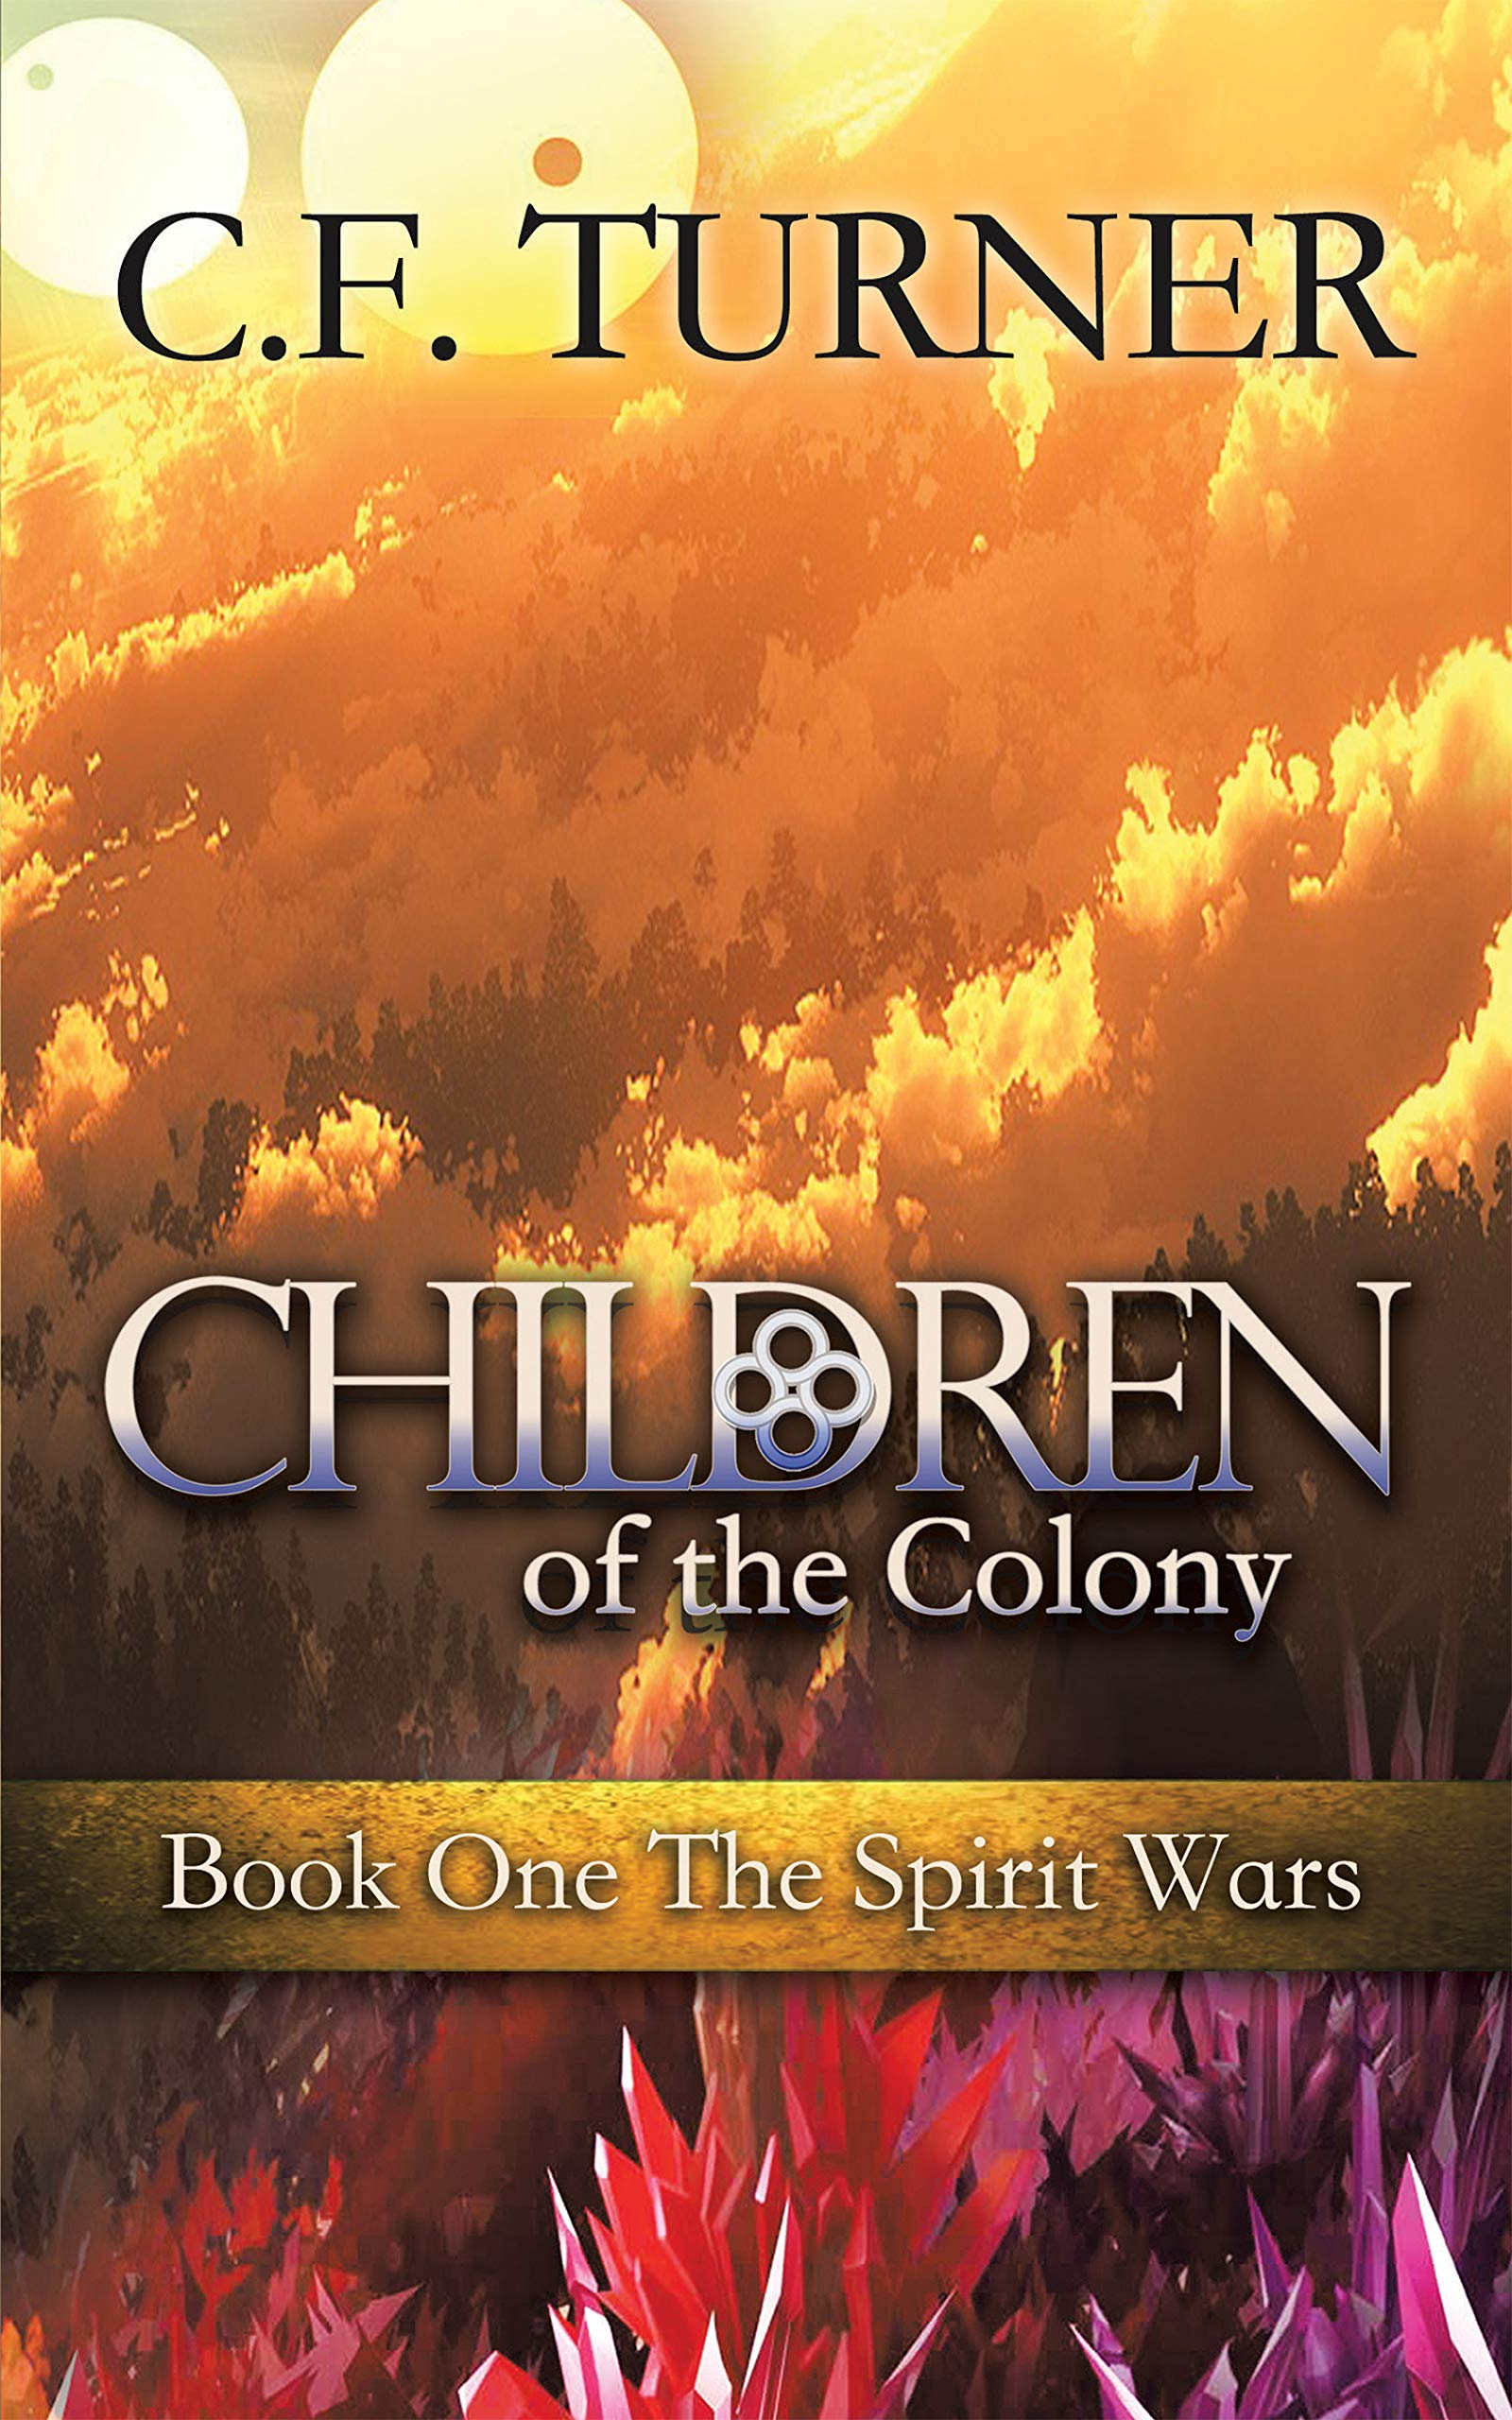 Children of the Colony: Book One The Spirit Wars